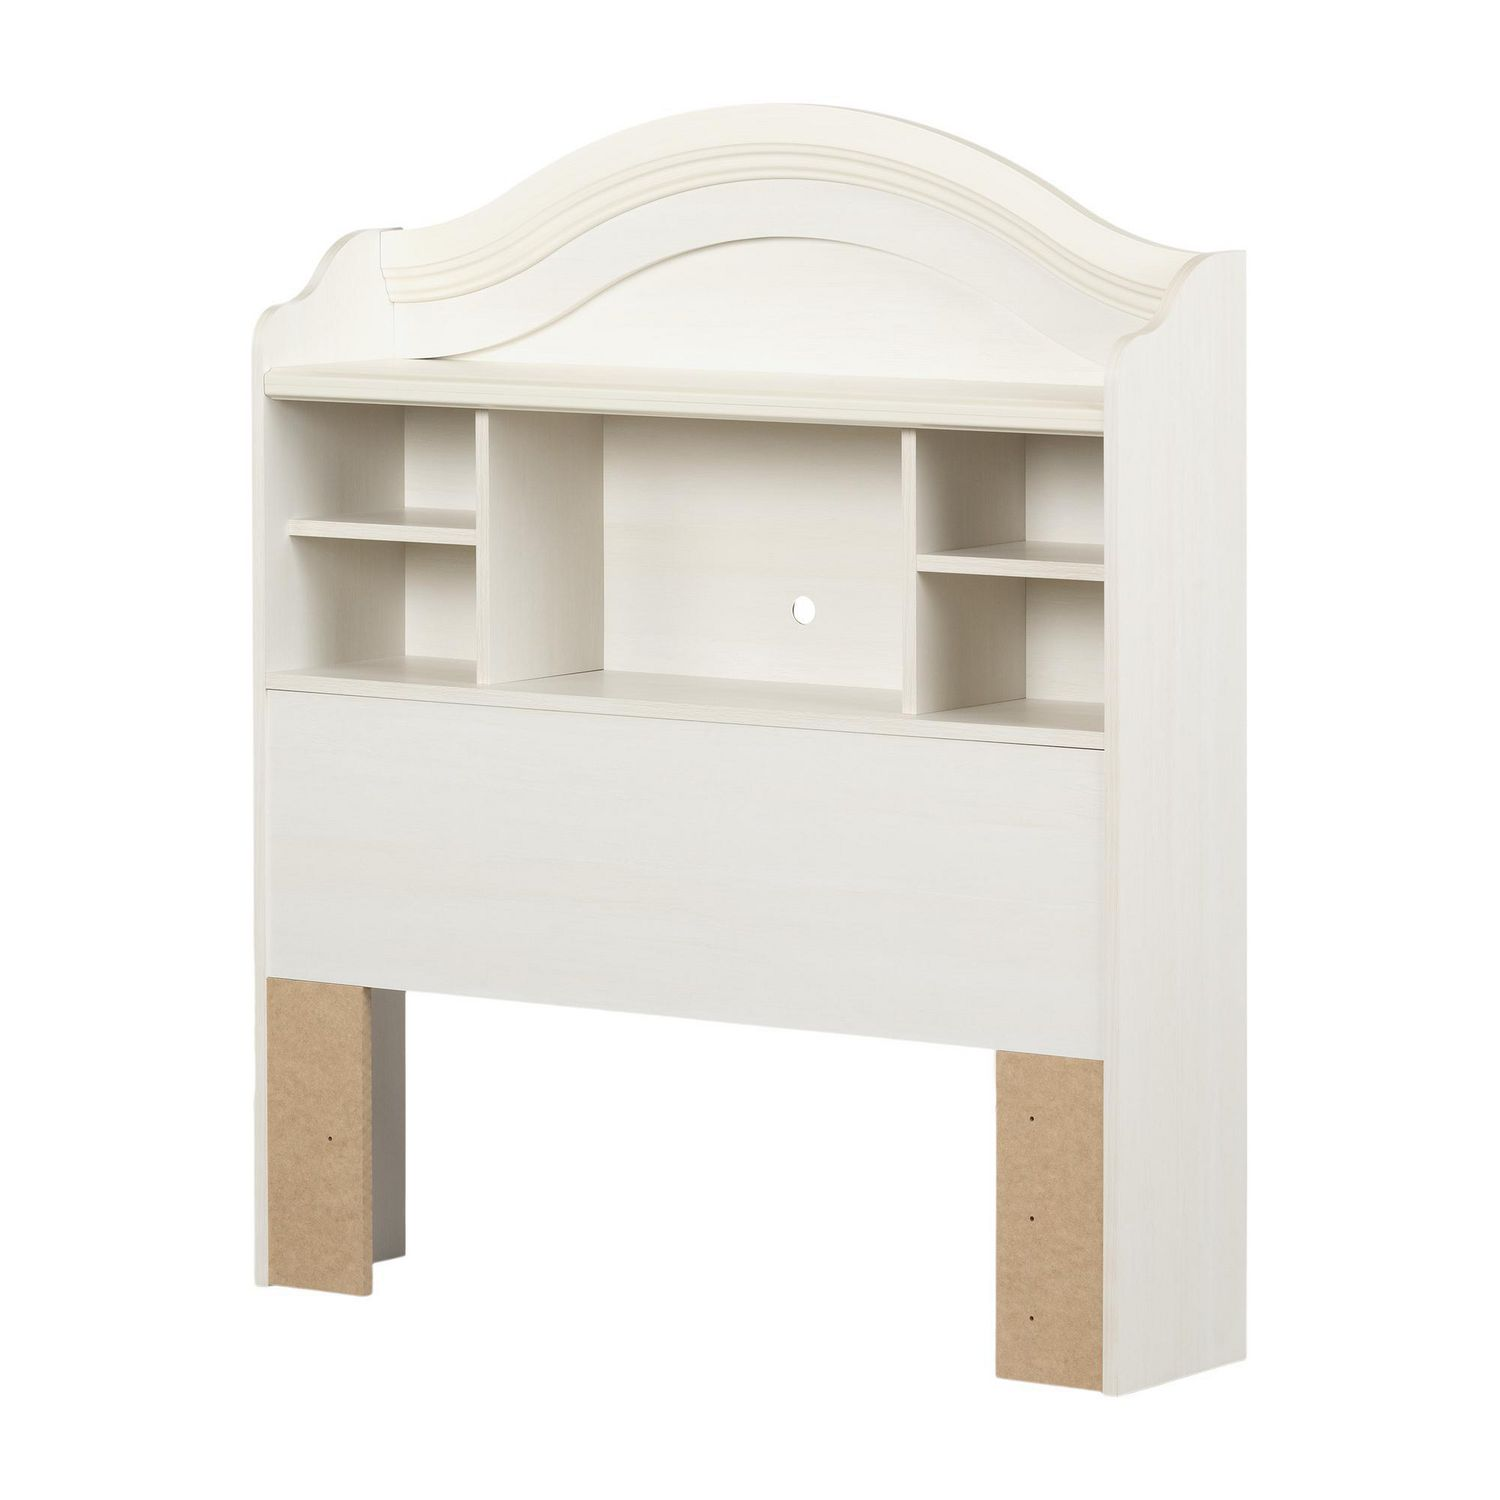 white ca decorating bookcase h alarming reviews size tv twin south improvement contemporary shelf enchanting axess shore home of amazing dramatic collection southshore amazon on fascinating ideas savannah full b creative uncategorized royal cherry kitchen